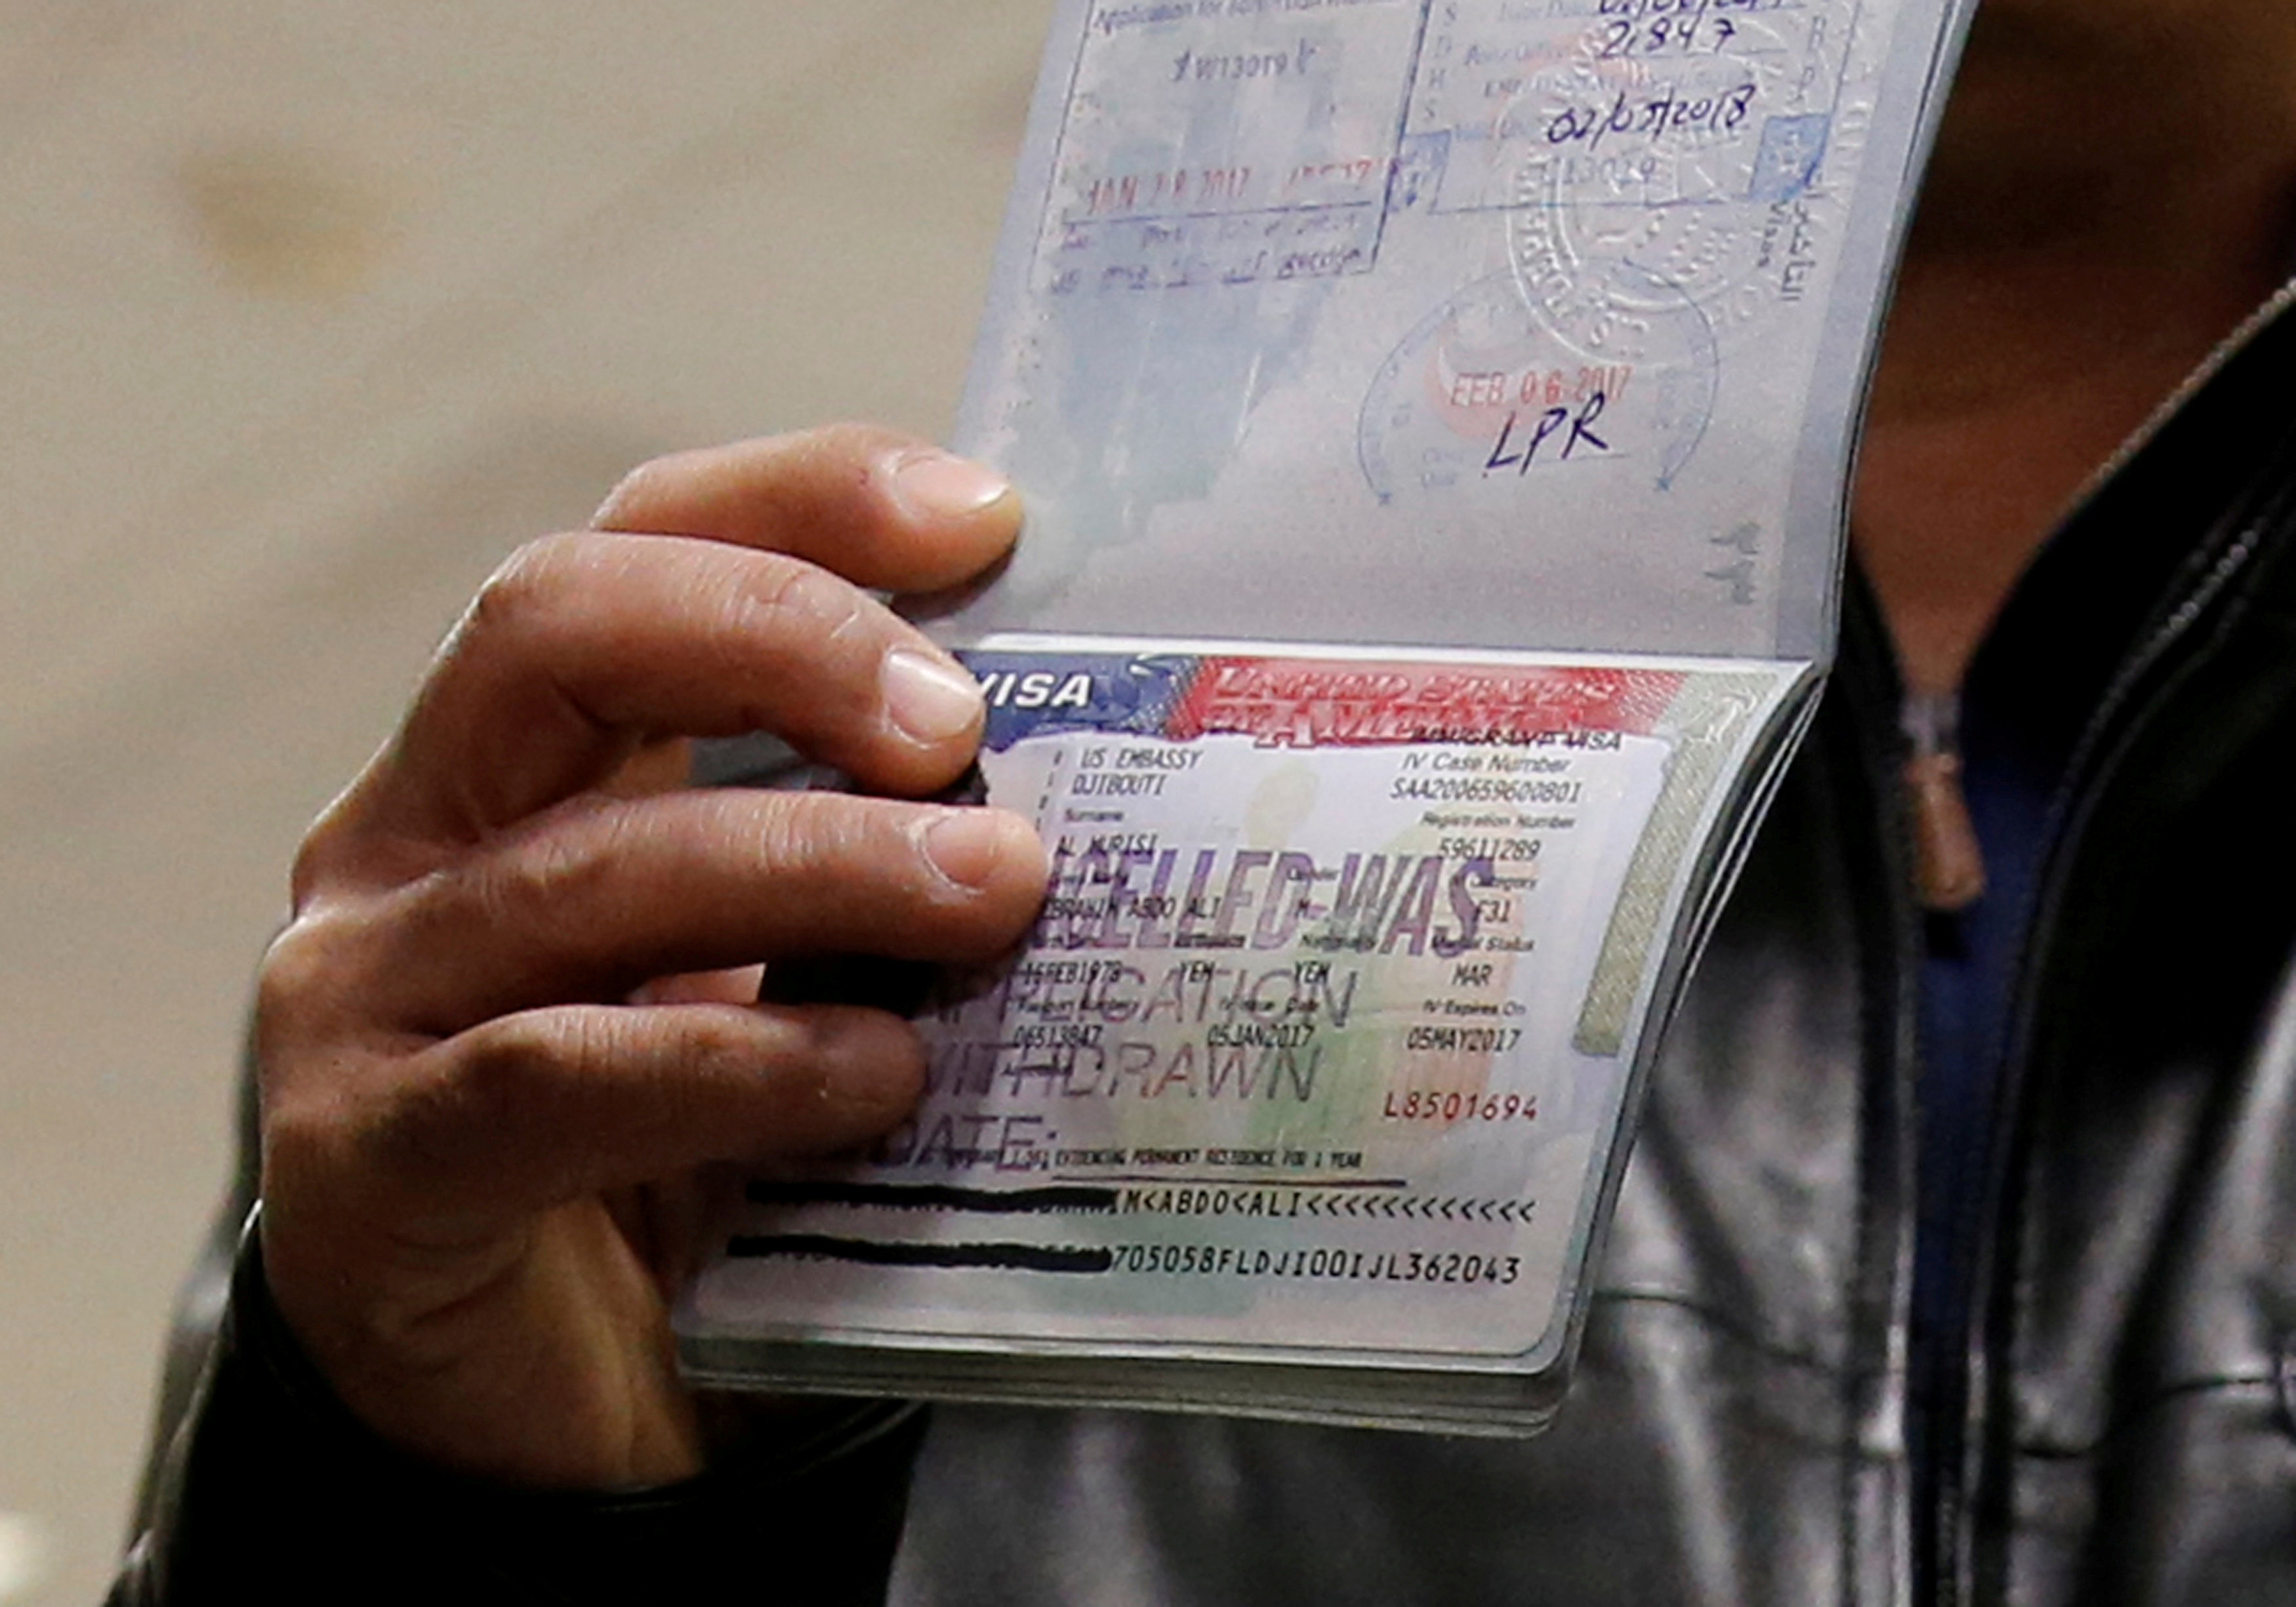 FILE PHOTO: A member of the Al Murisi family, Yemeni nationals who were denied entry into the U.S. last week because of the recent travel ban, shows the cancelled visa in their passport from their failed entry to reporters as they successfully arrive to be reunited with their family at Washington Dulles International Airport in Chantilly, Virginia, US February 6, 2017. Credit: Reuters/Jonathan Ernst/File Photo